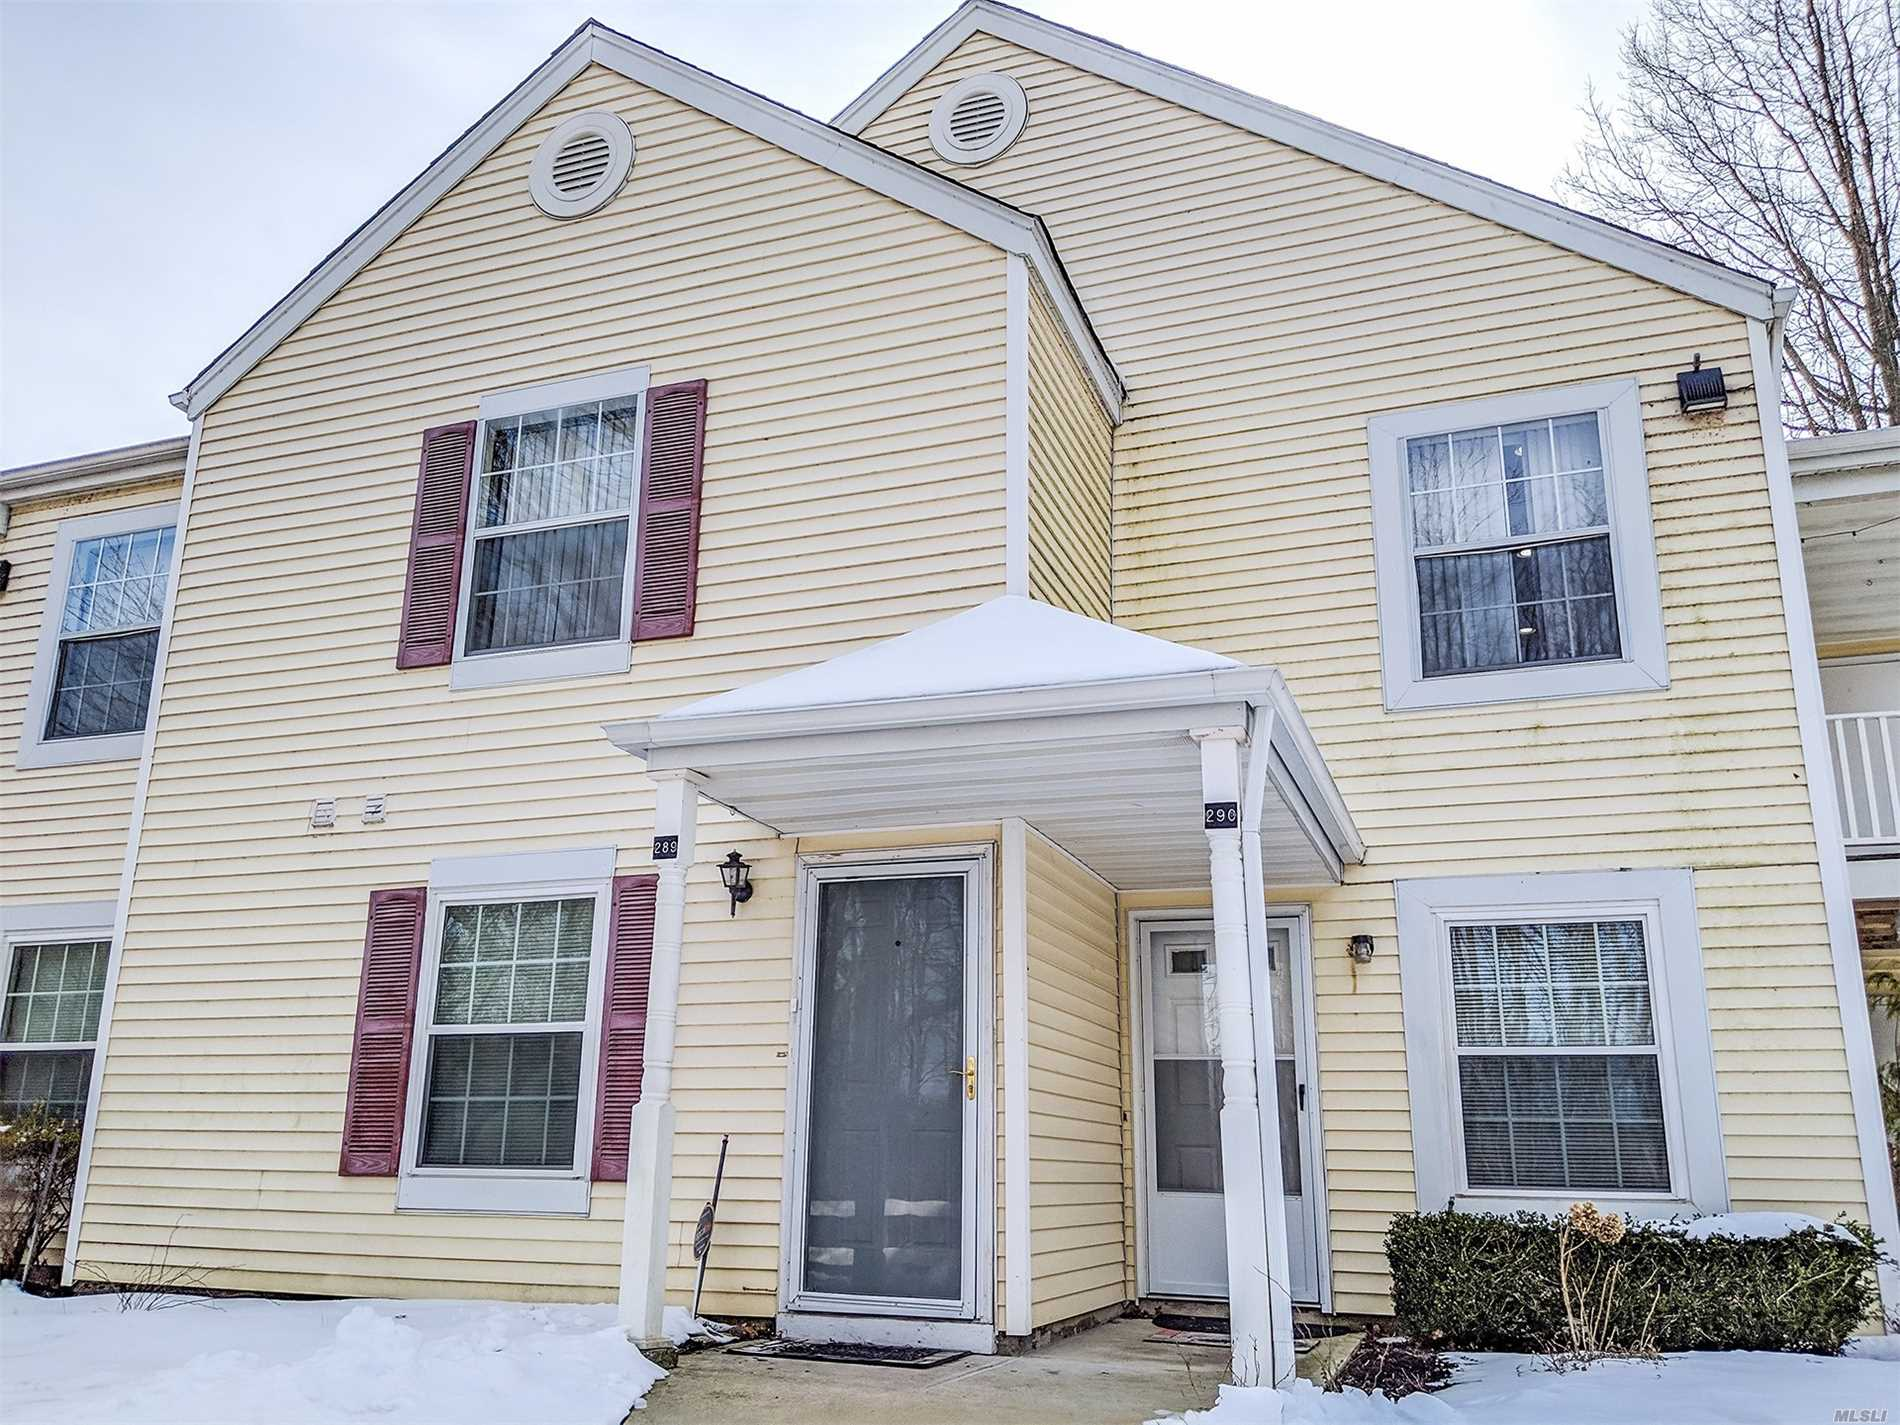 Beautiful 2nd Floor Condo In Fairview Circle. It Features 2 Bedrooms and 1.5 Baths. Master Bedroom has a half bath en-suite,  Large Living Room, Dining Room, Updated Kitchen with Stainless Steel Appliances, Laundry Room, Central Air & Gas Heat! Dont Miss this Move in Ready Condo!